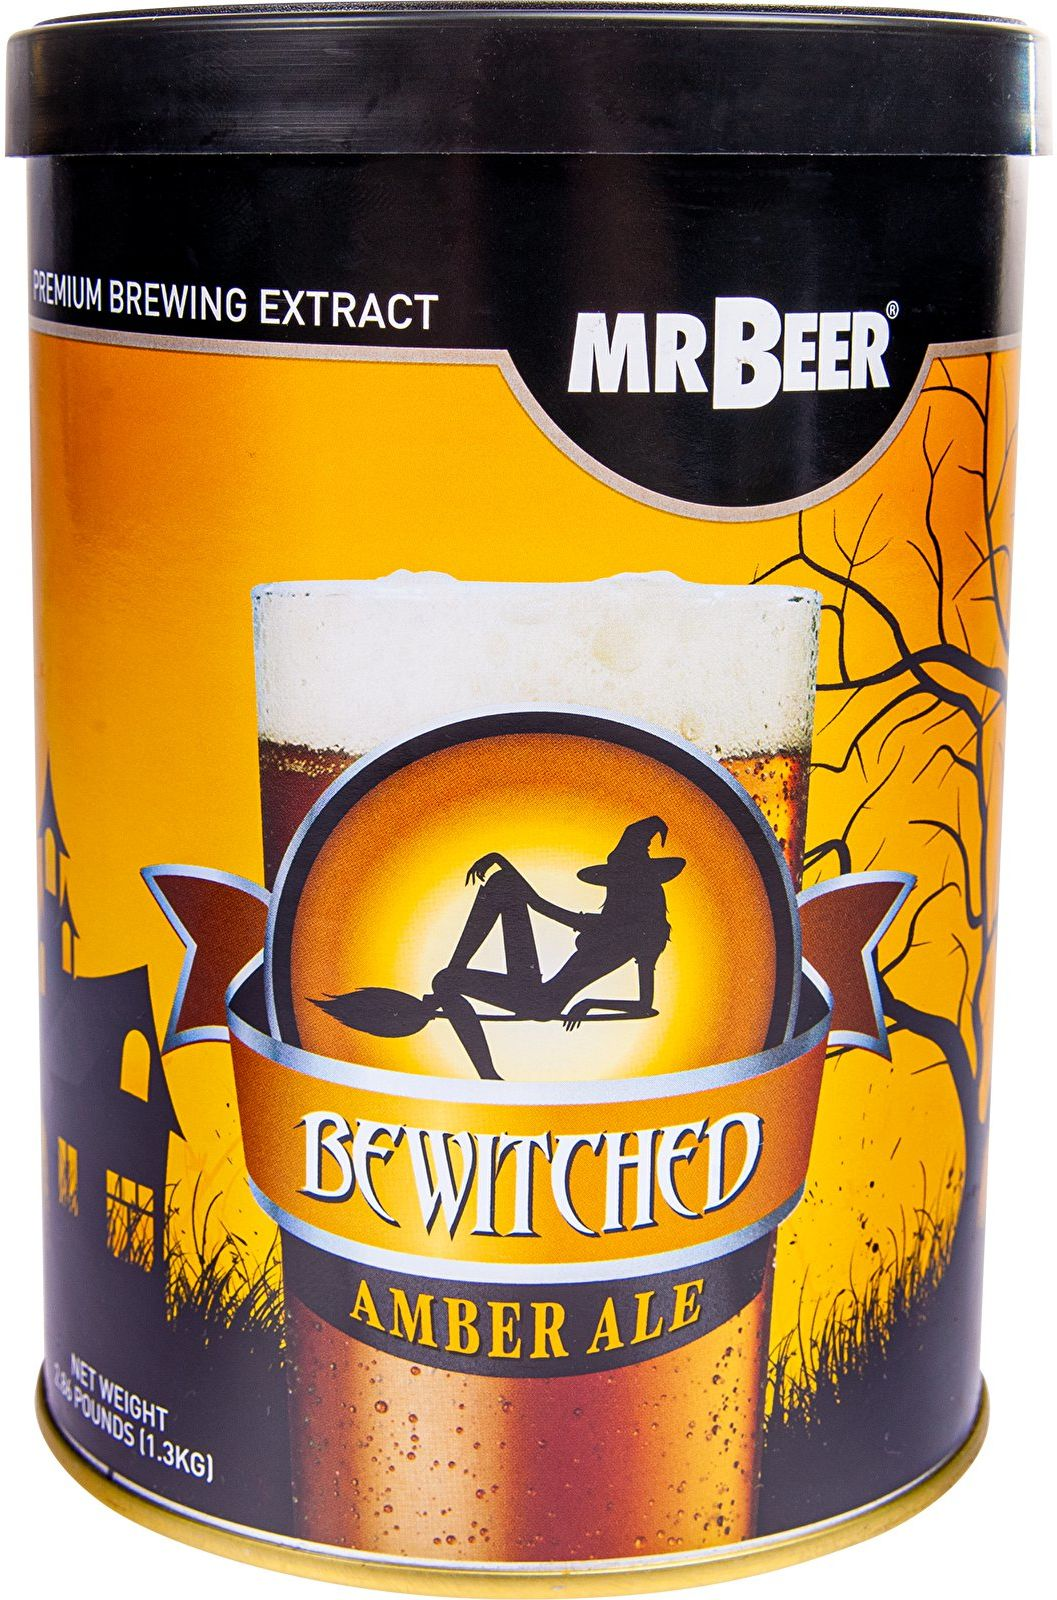 Brewkit Coopers Bewitched Amber Ale